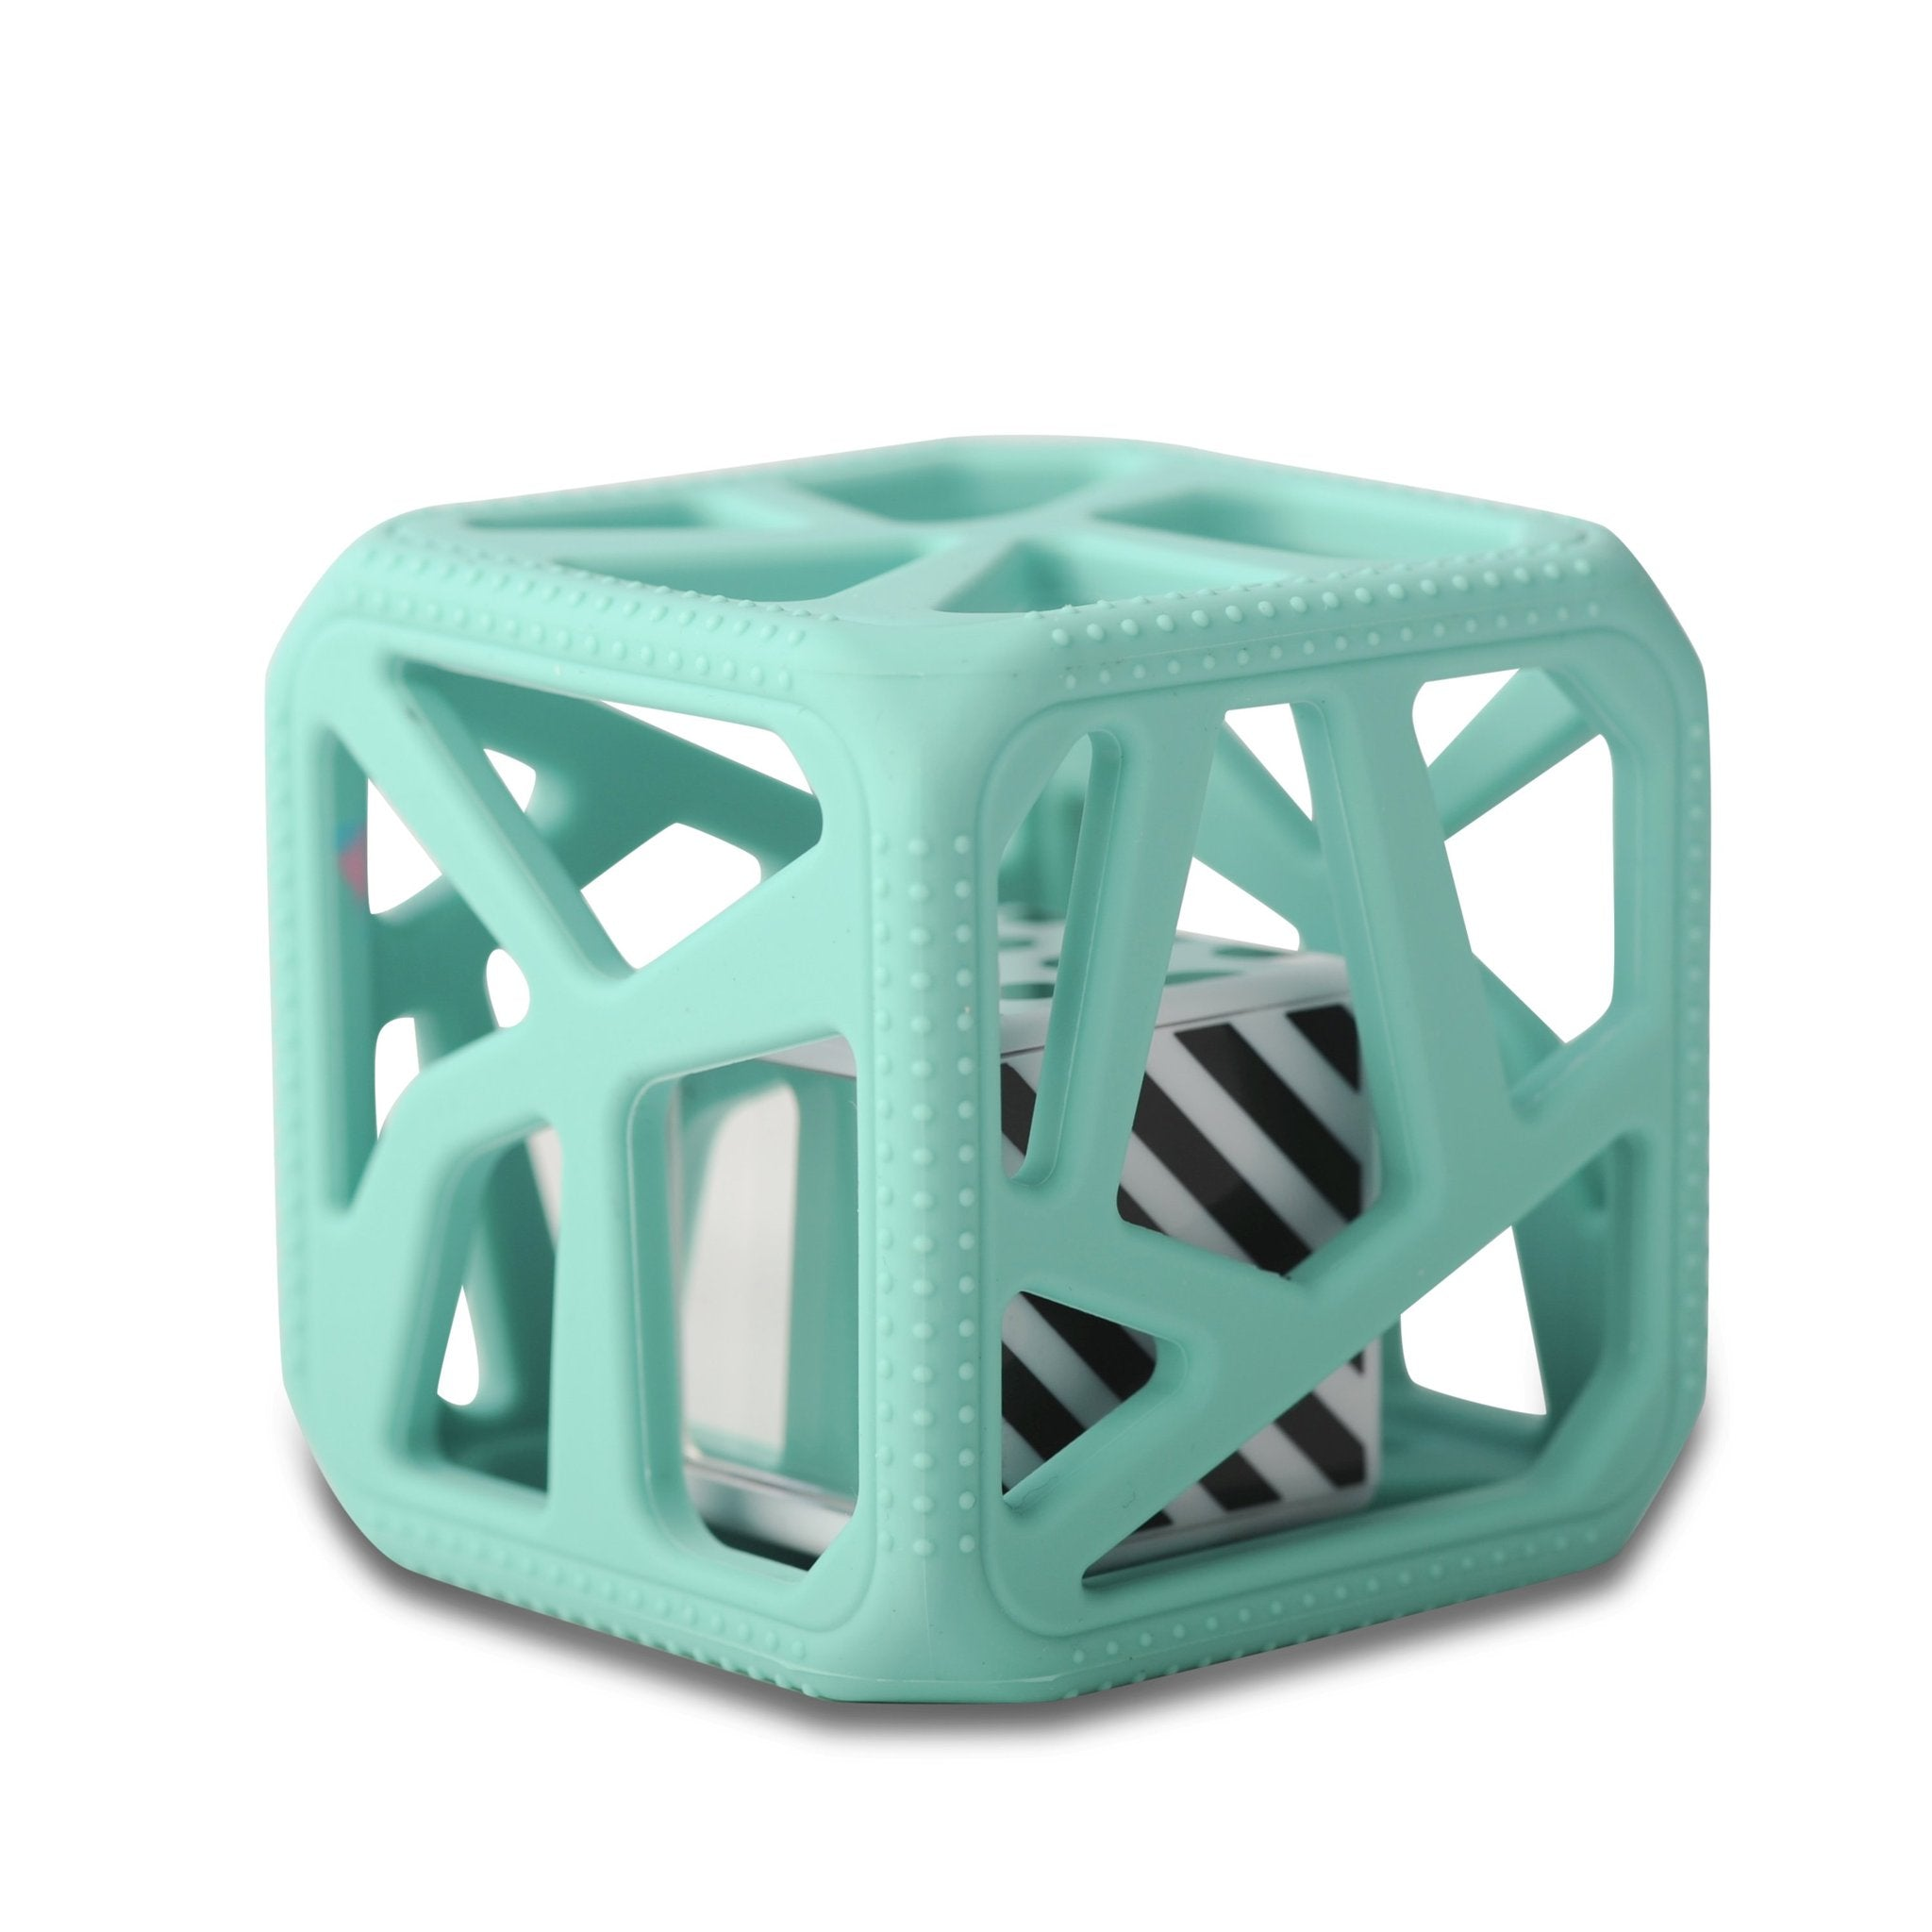 MALARKEY • Chew Cube • Mint Green